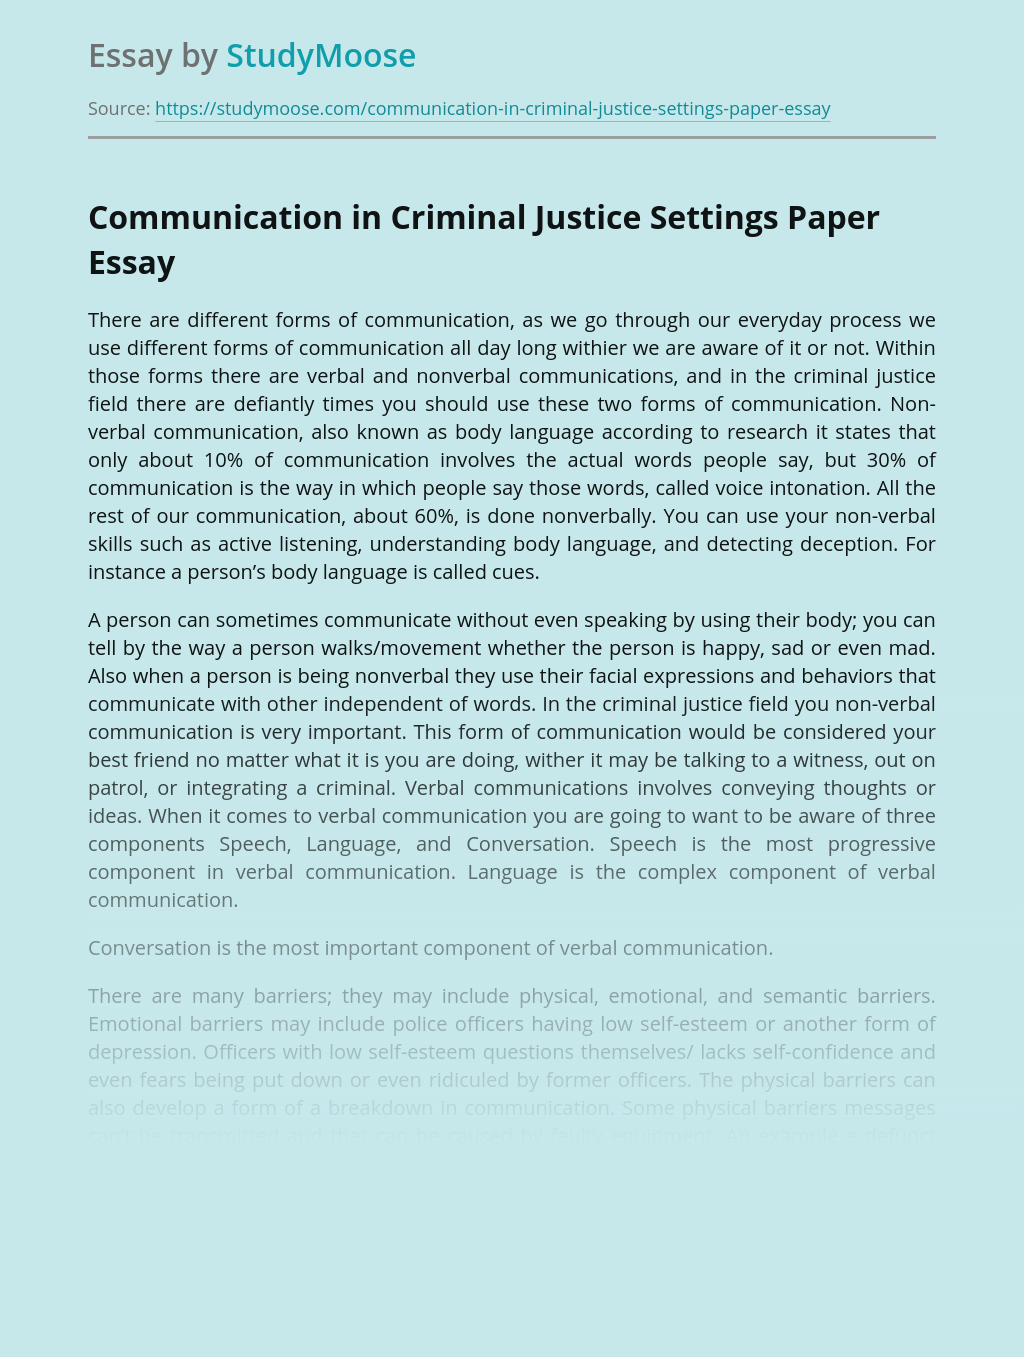 Communication in Criminal Justice Settings Paper